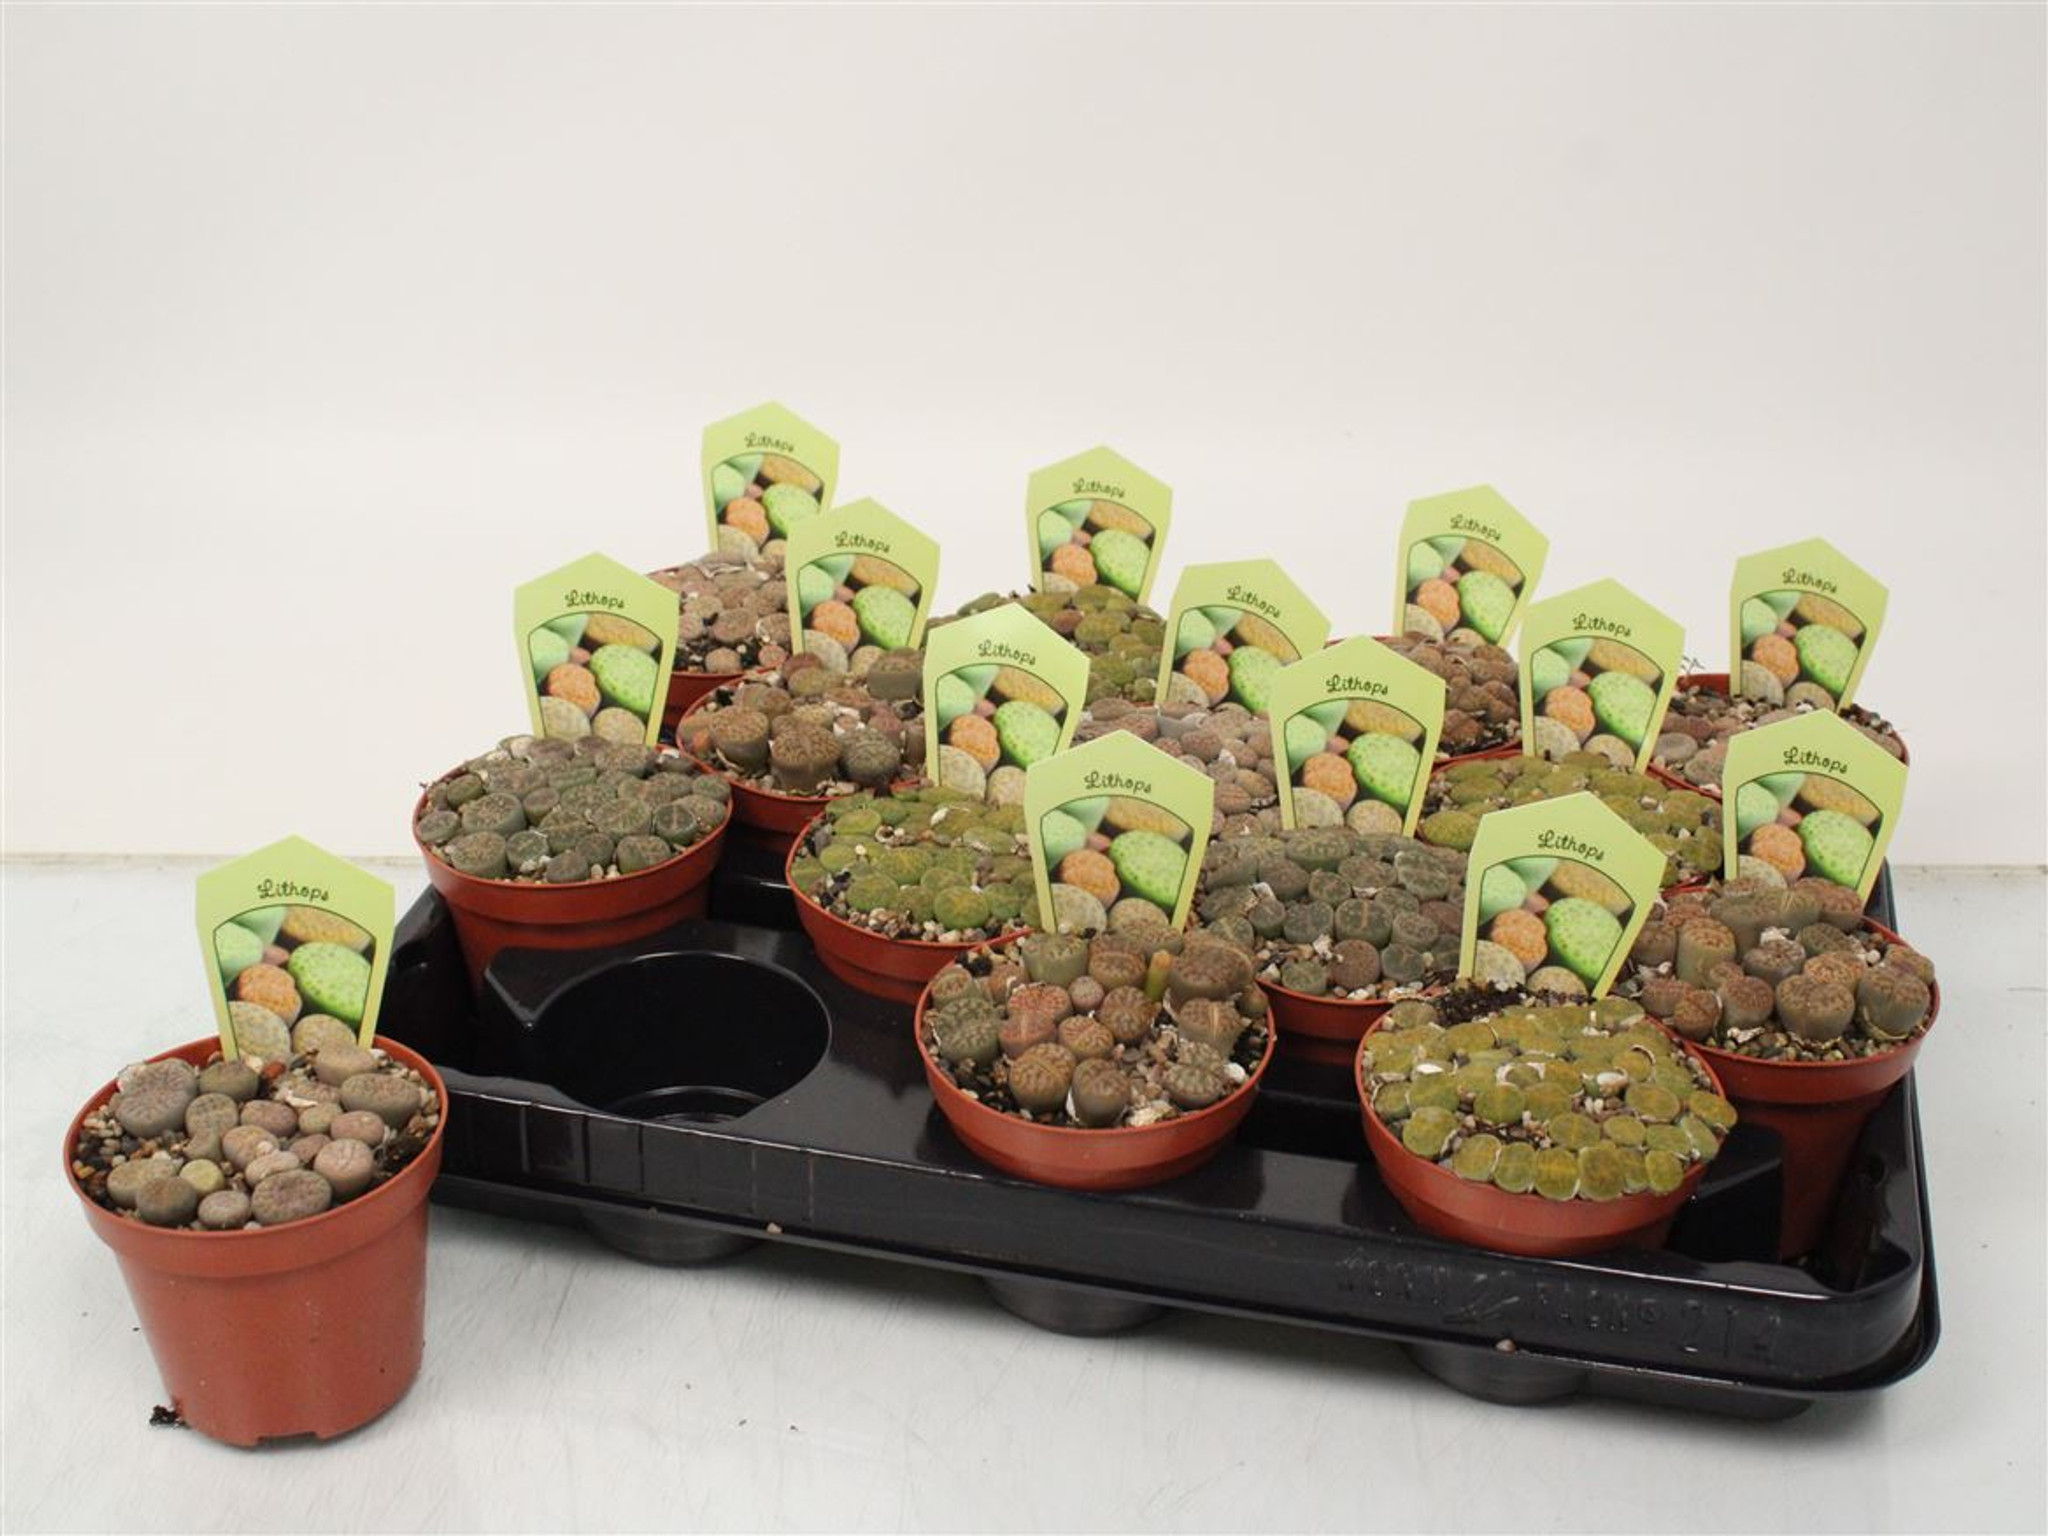 Larger pot of lithops 3 -4 years old.  mixed varieties.